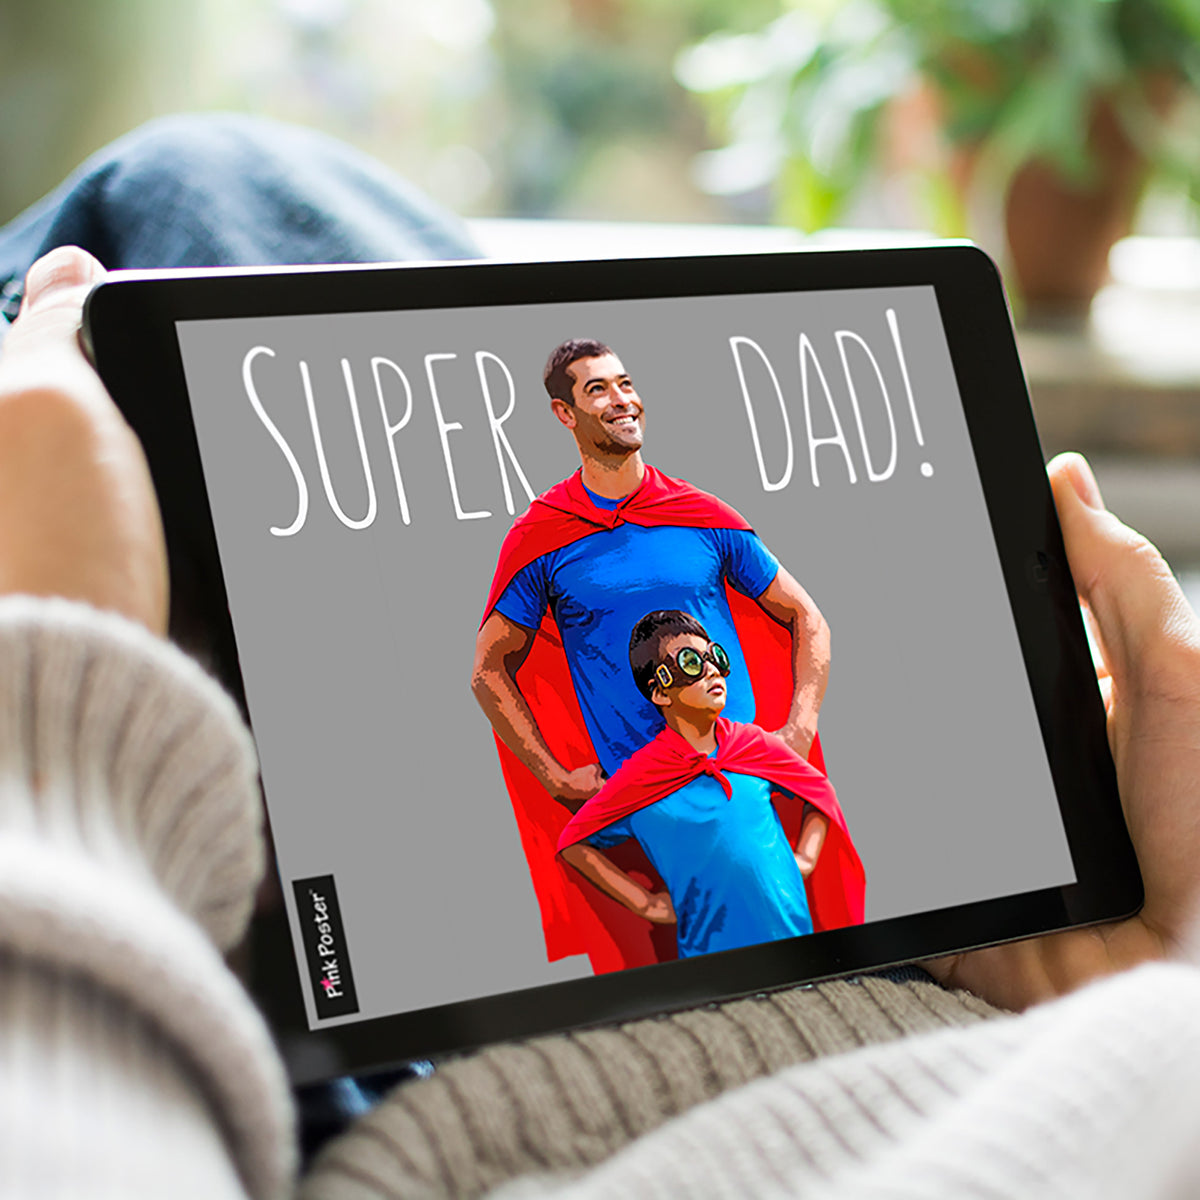 Digital pop art of super dad on iPad